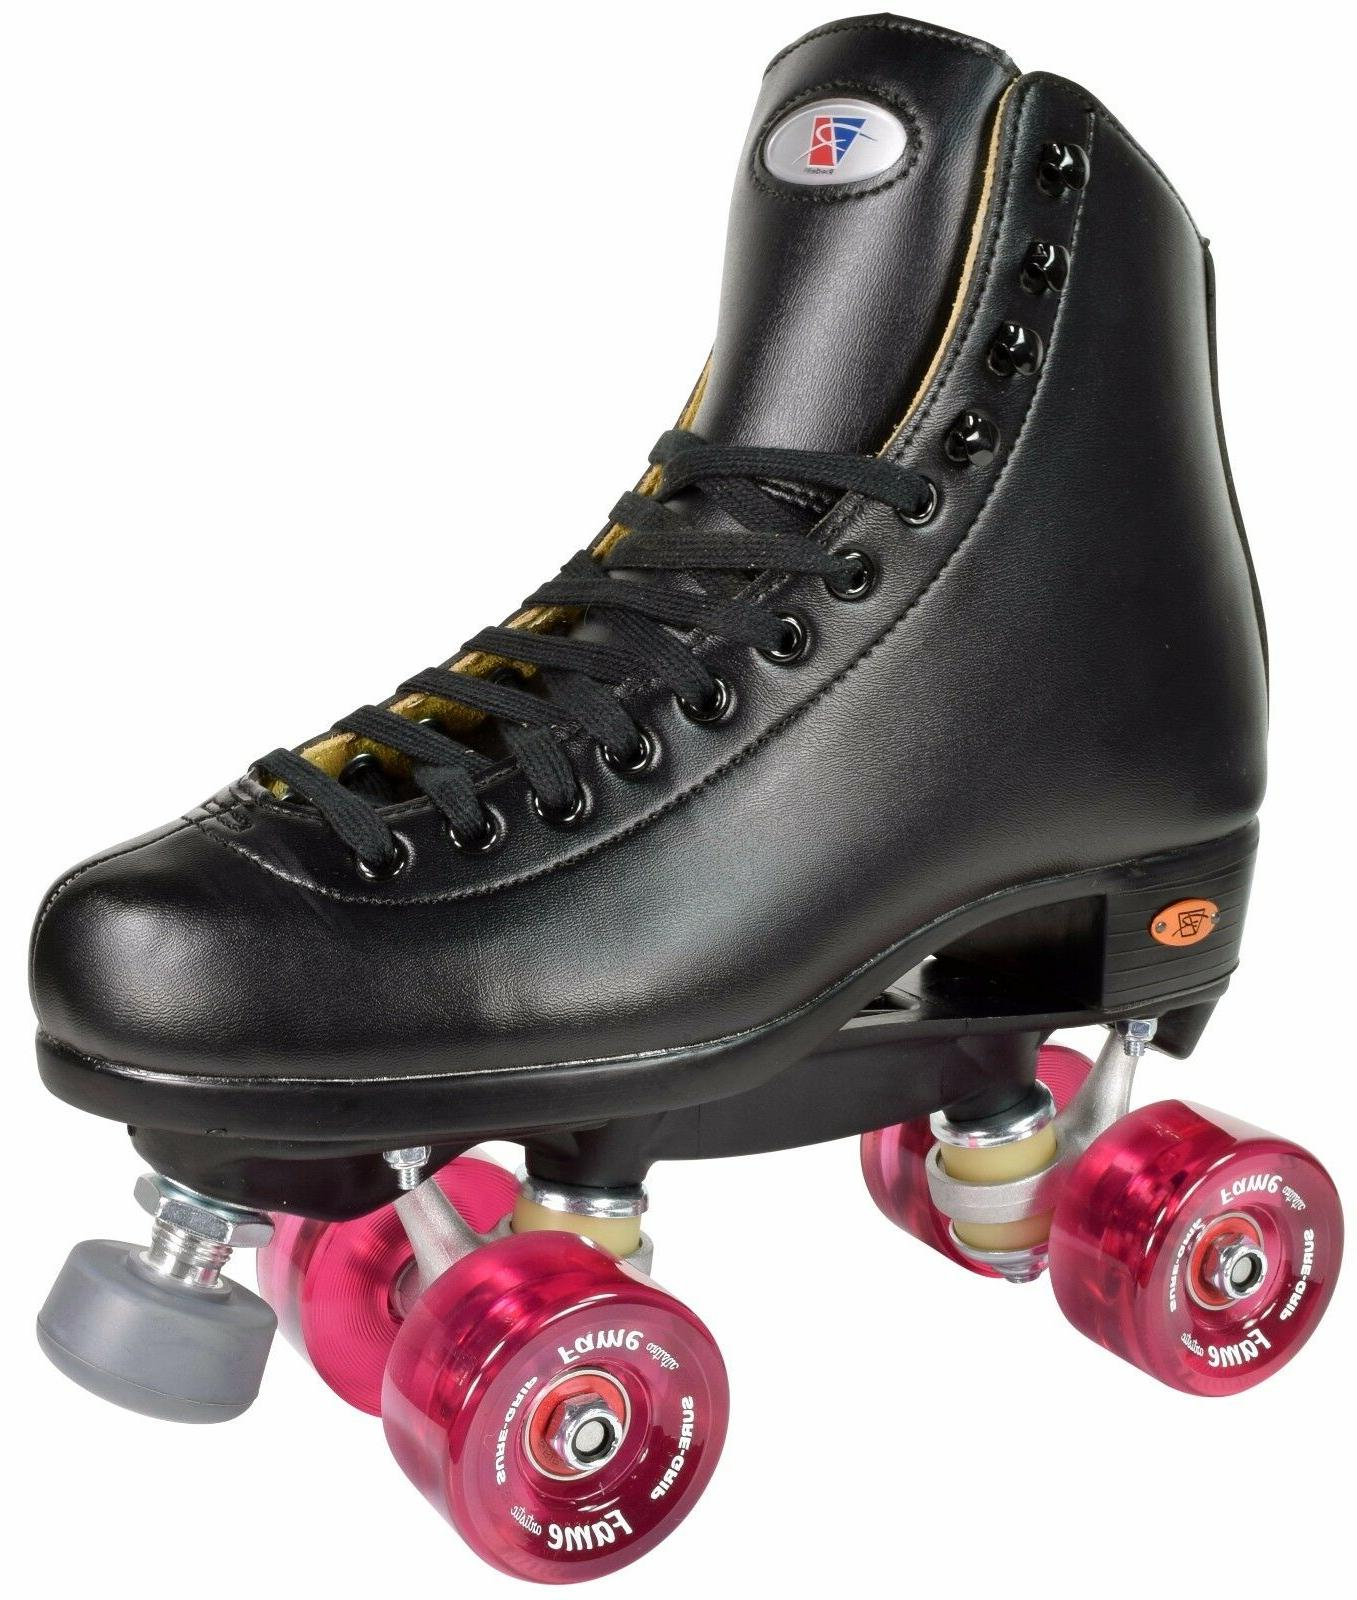 Riedell 111 Fame Roller Skates High Top Artistic Skate Clear Pink Wheels